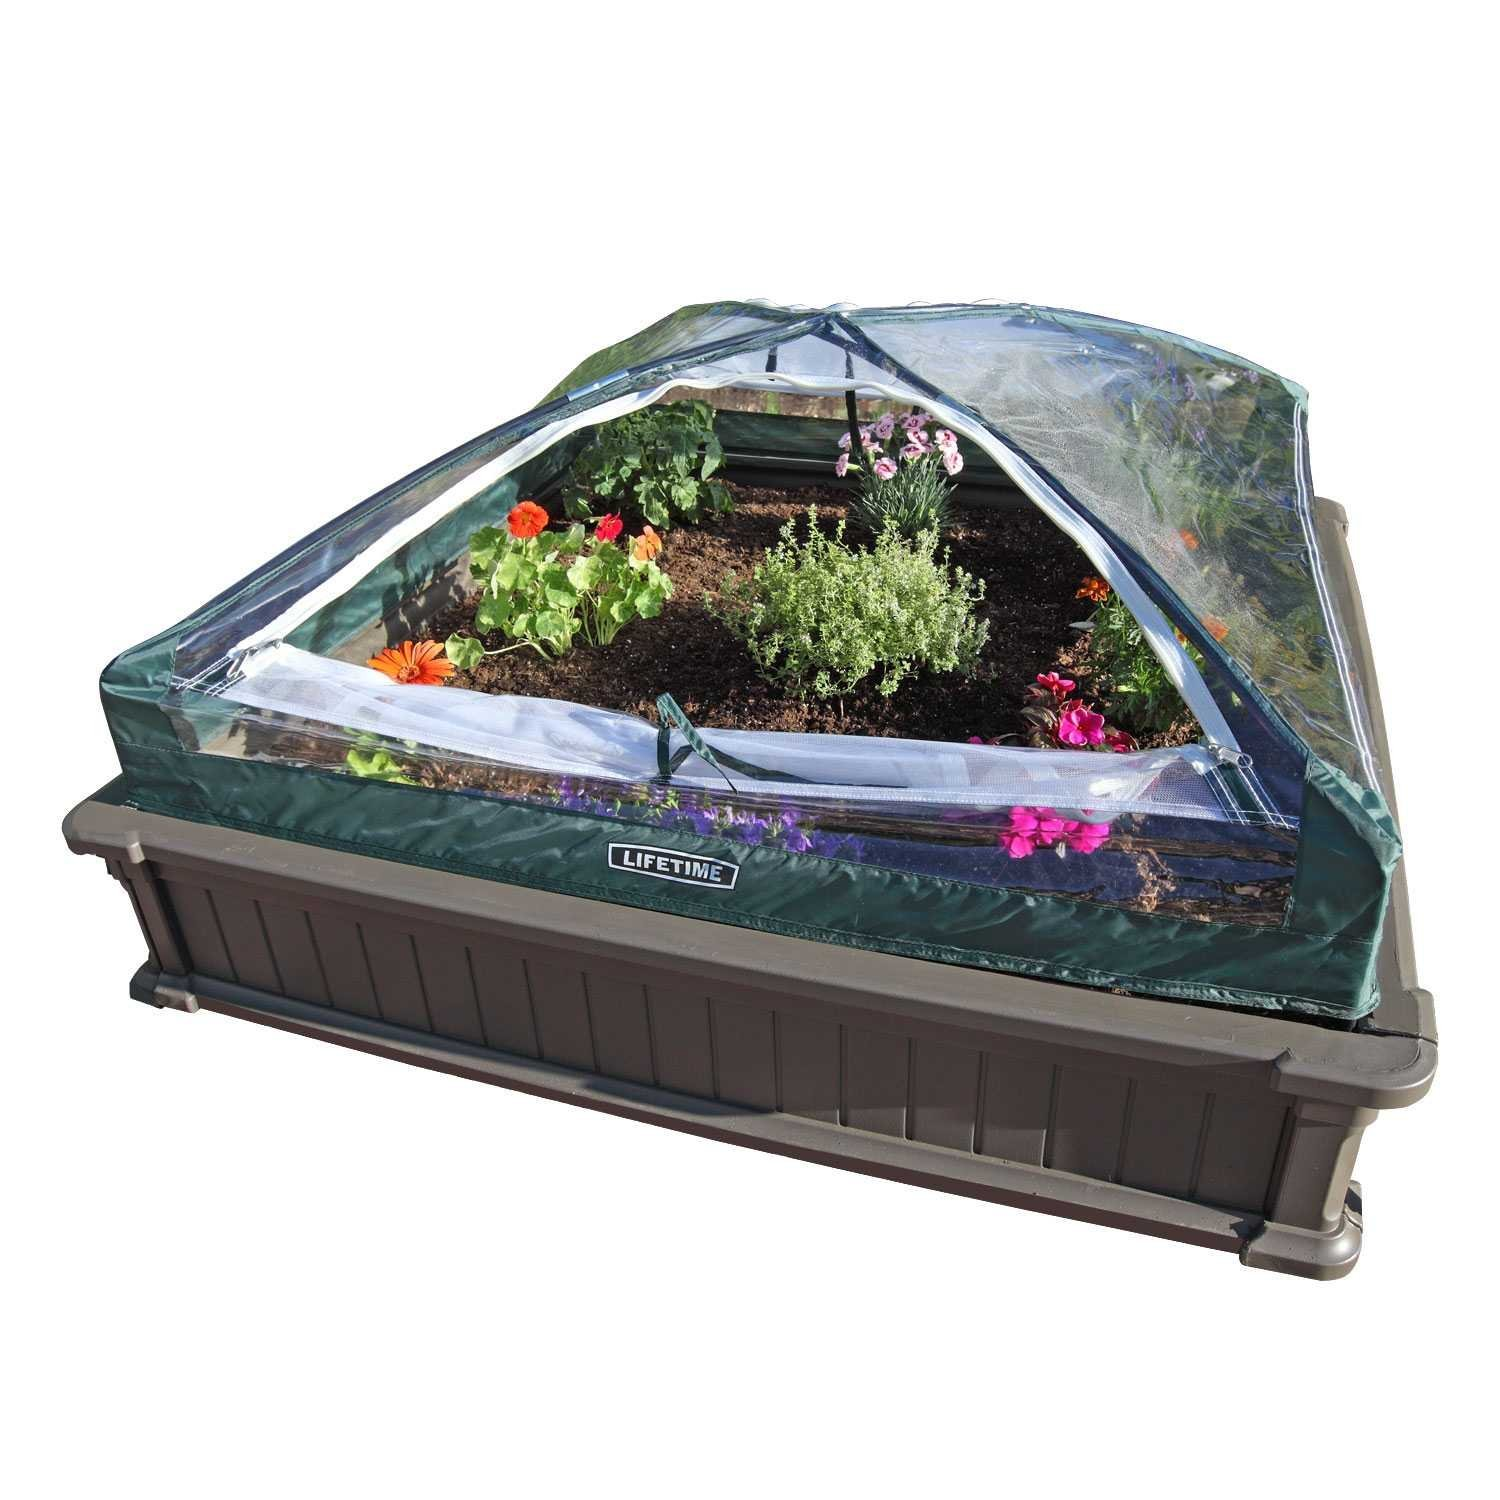 Lifetime 60053 Raised Garde Bed Kit, 2 Beds and 1 Early Start Vinyl Enclosure by Lifetime